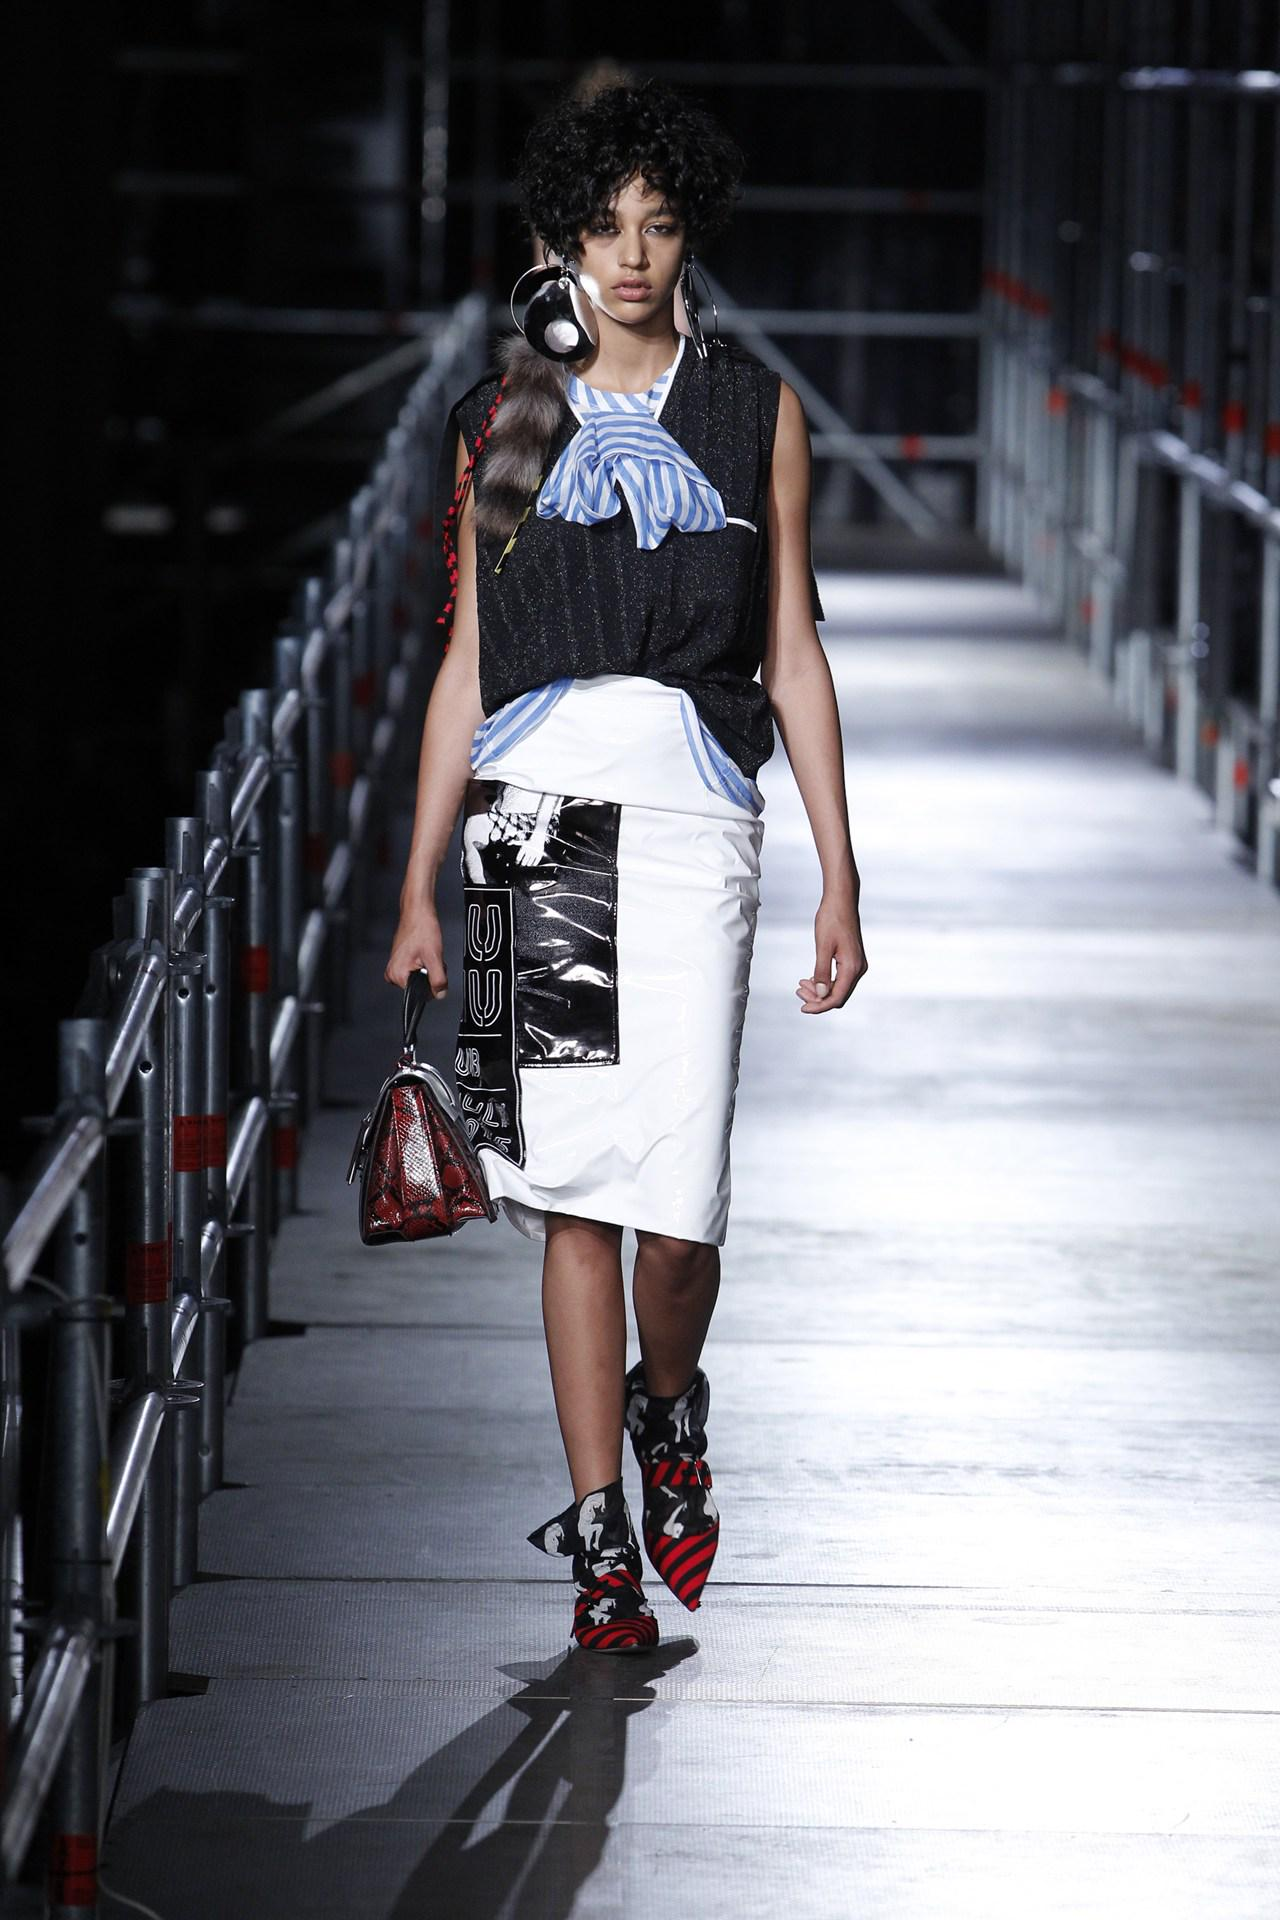 Workwear gets a punk revamp - see the @MIUMIUofficial #ps16 collection http://t.co/jlop9FYWEf http://t.co/983E7aBv2M